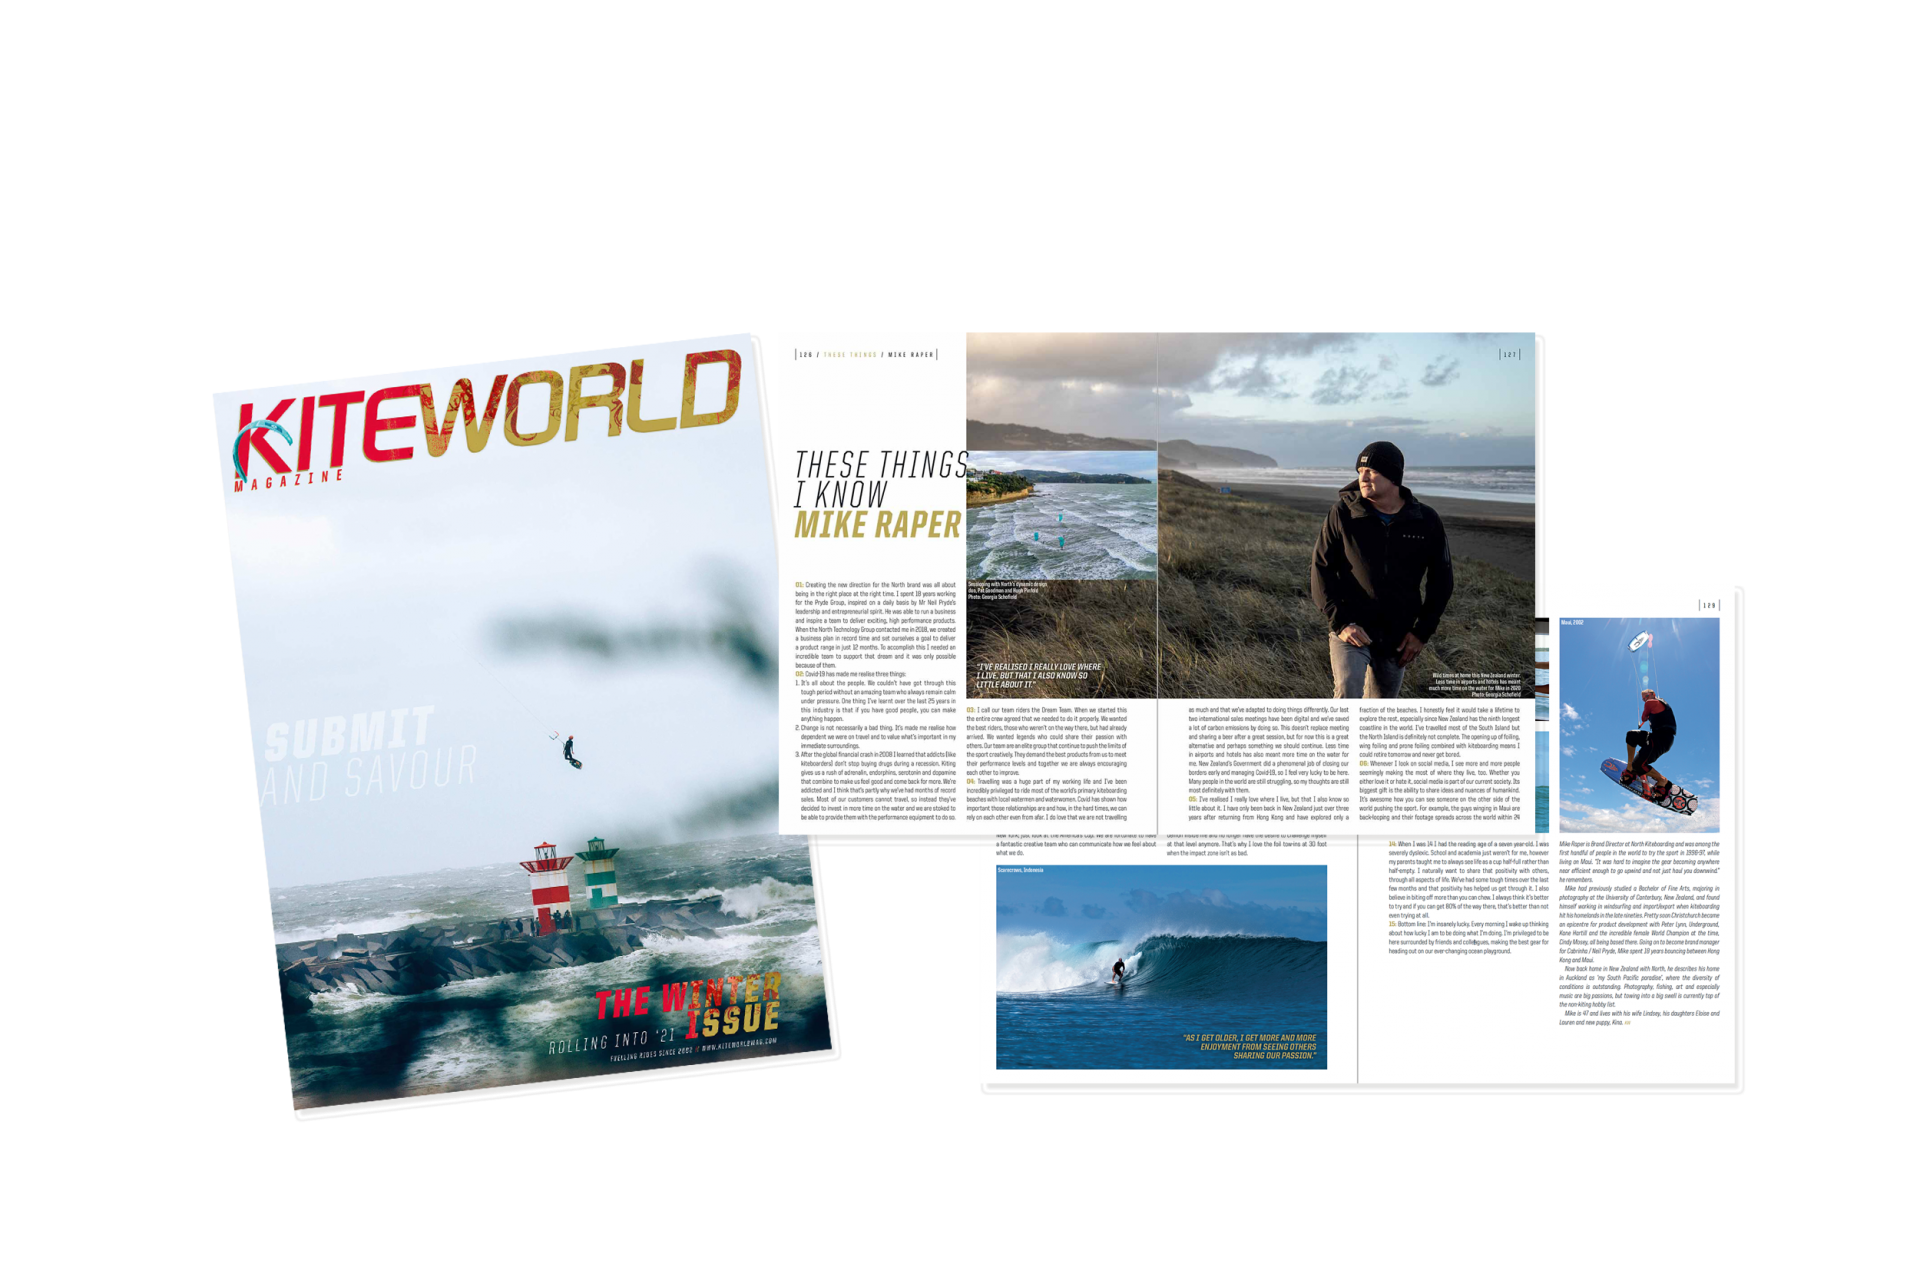 Mike Raper North Kiteboarding Brand Manager interview in Kiteworld